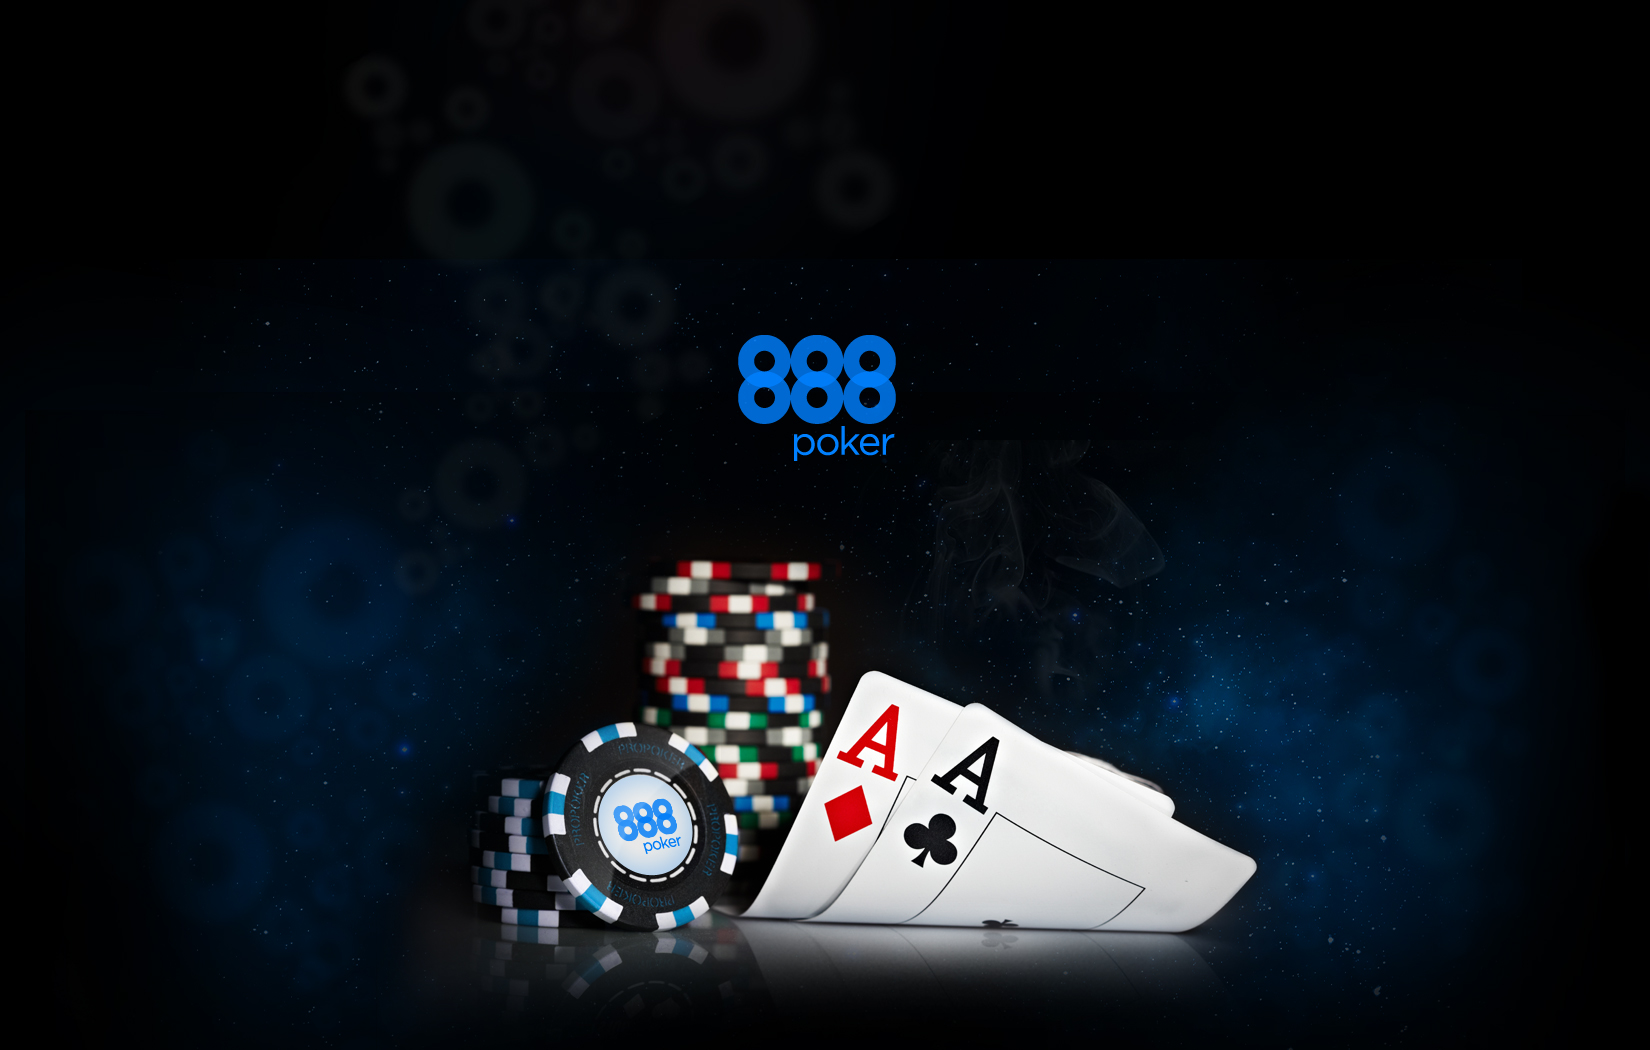 888 poker movil - 48688